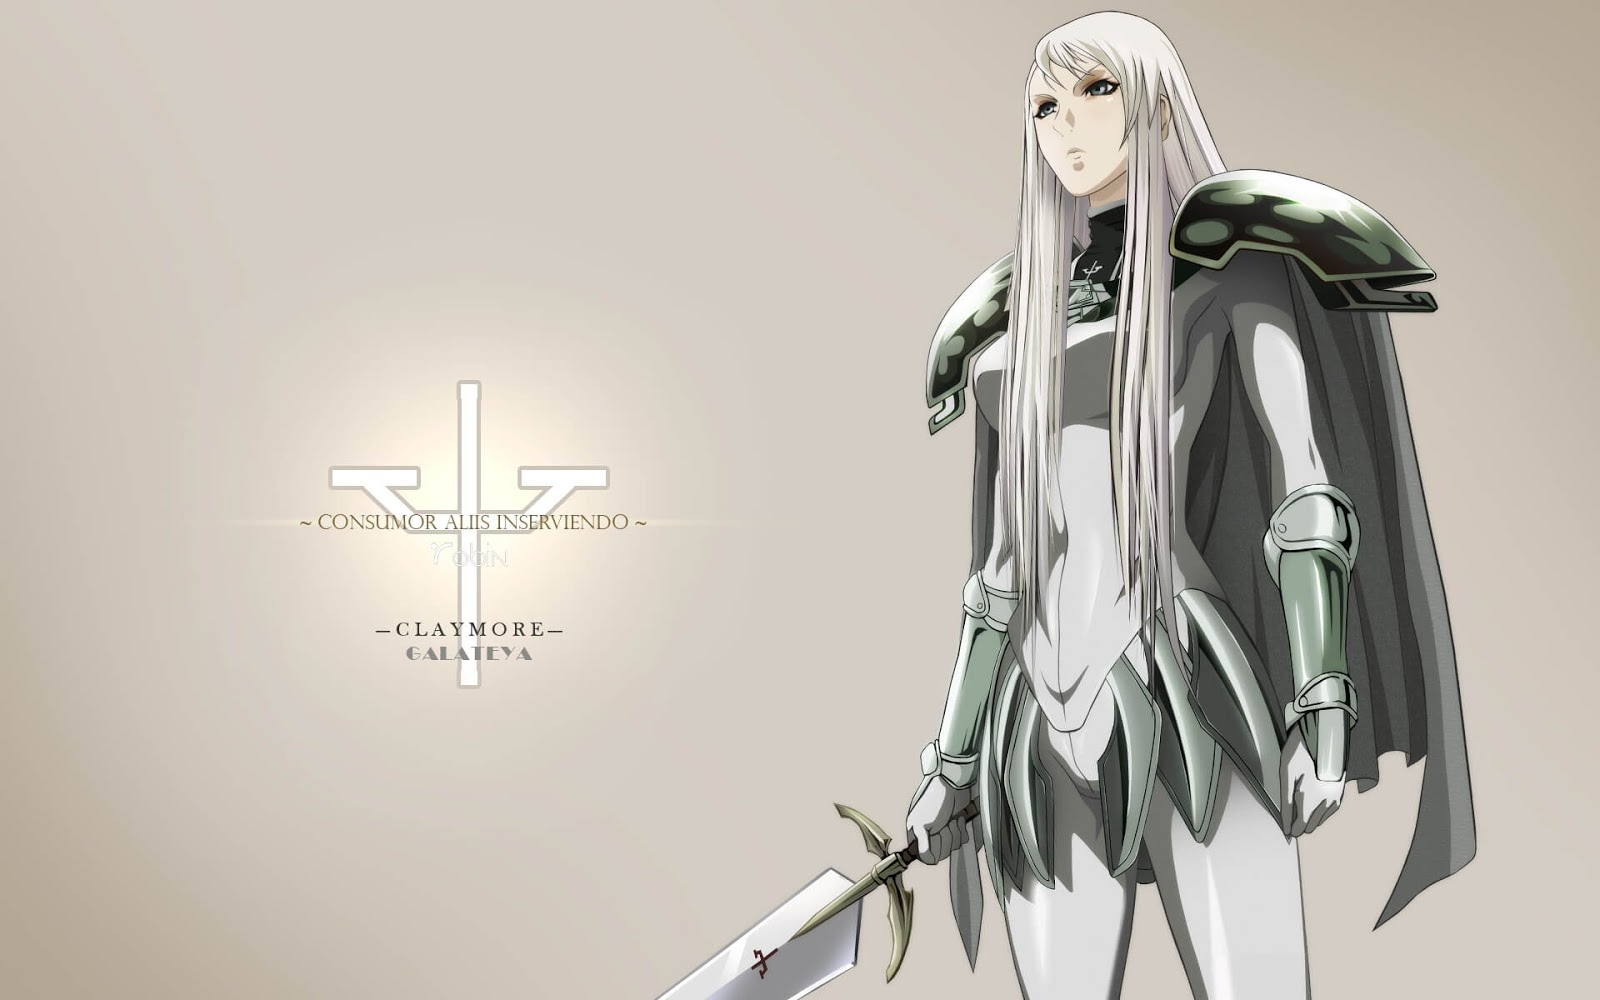 Claymore [BD] Sub Indo : Episode 1-26 END | Anime Loker